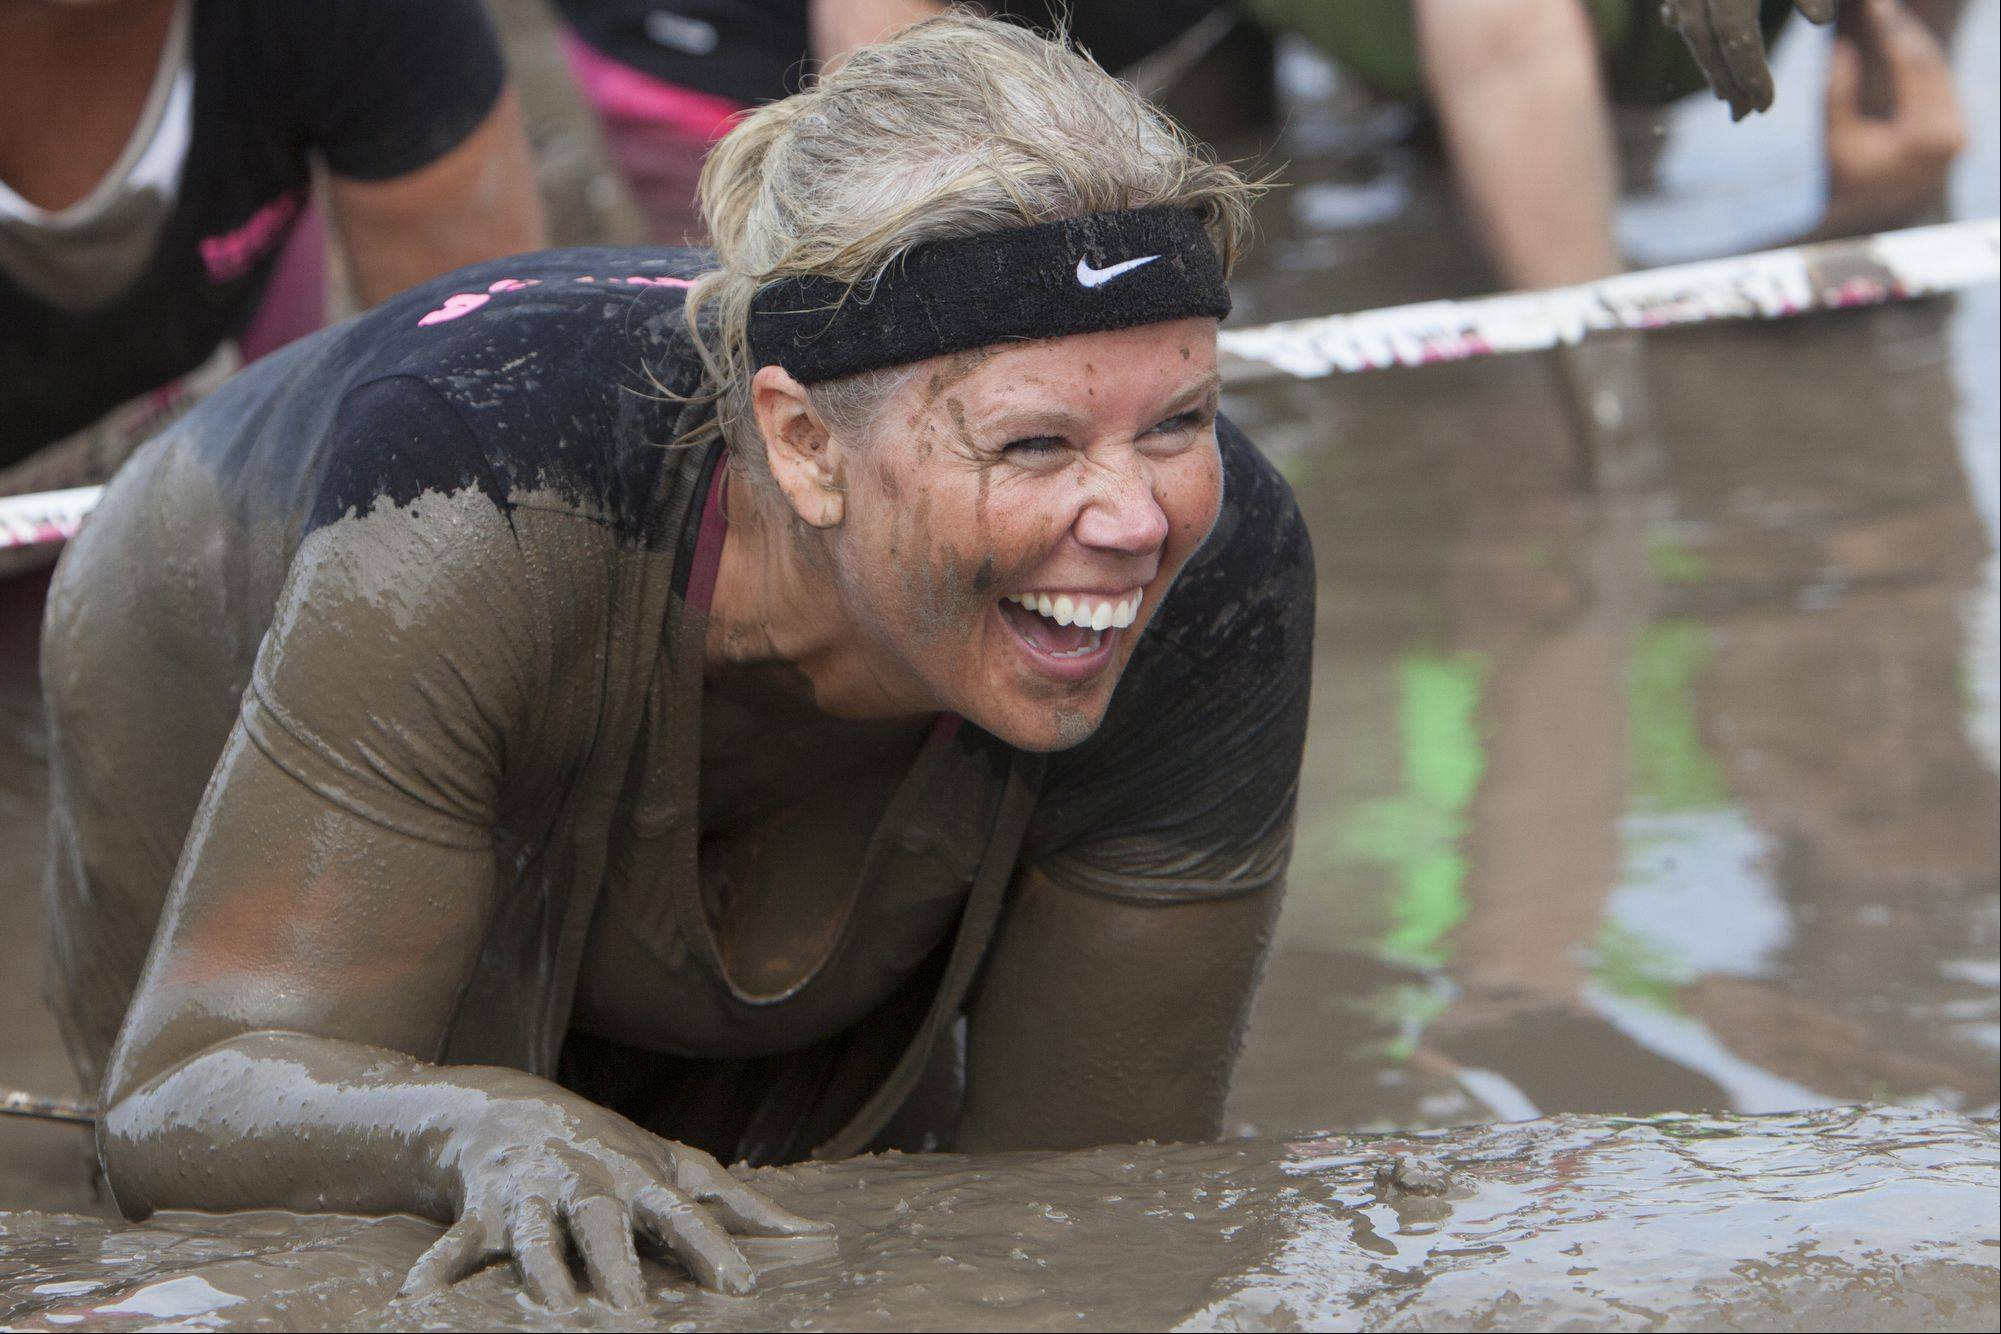 Stacey Anderson of Lindenhurst laughs when she reaches the end of an mud obstacle course during the Dirty Girl Mud Run.